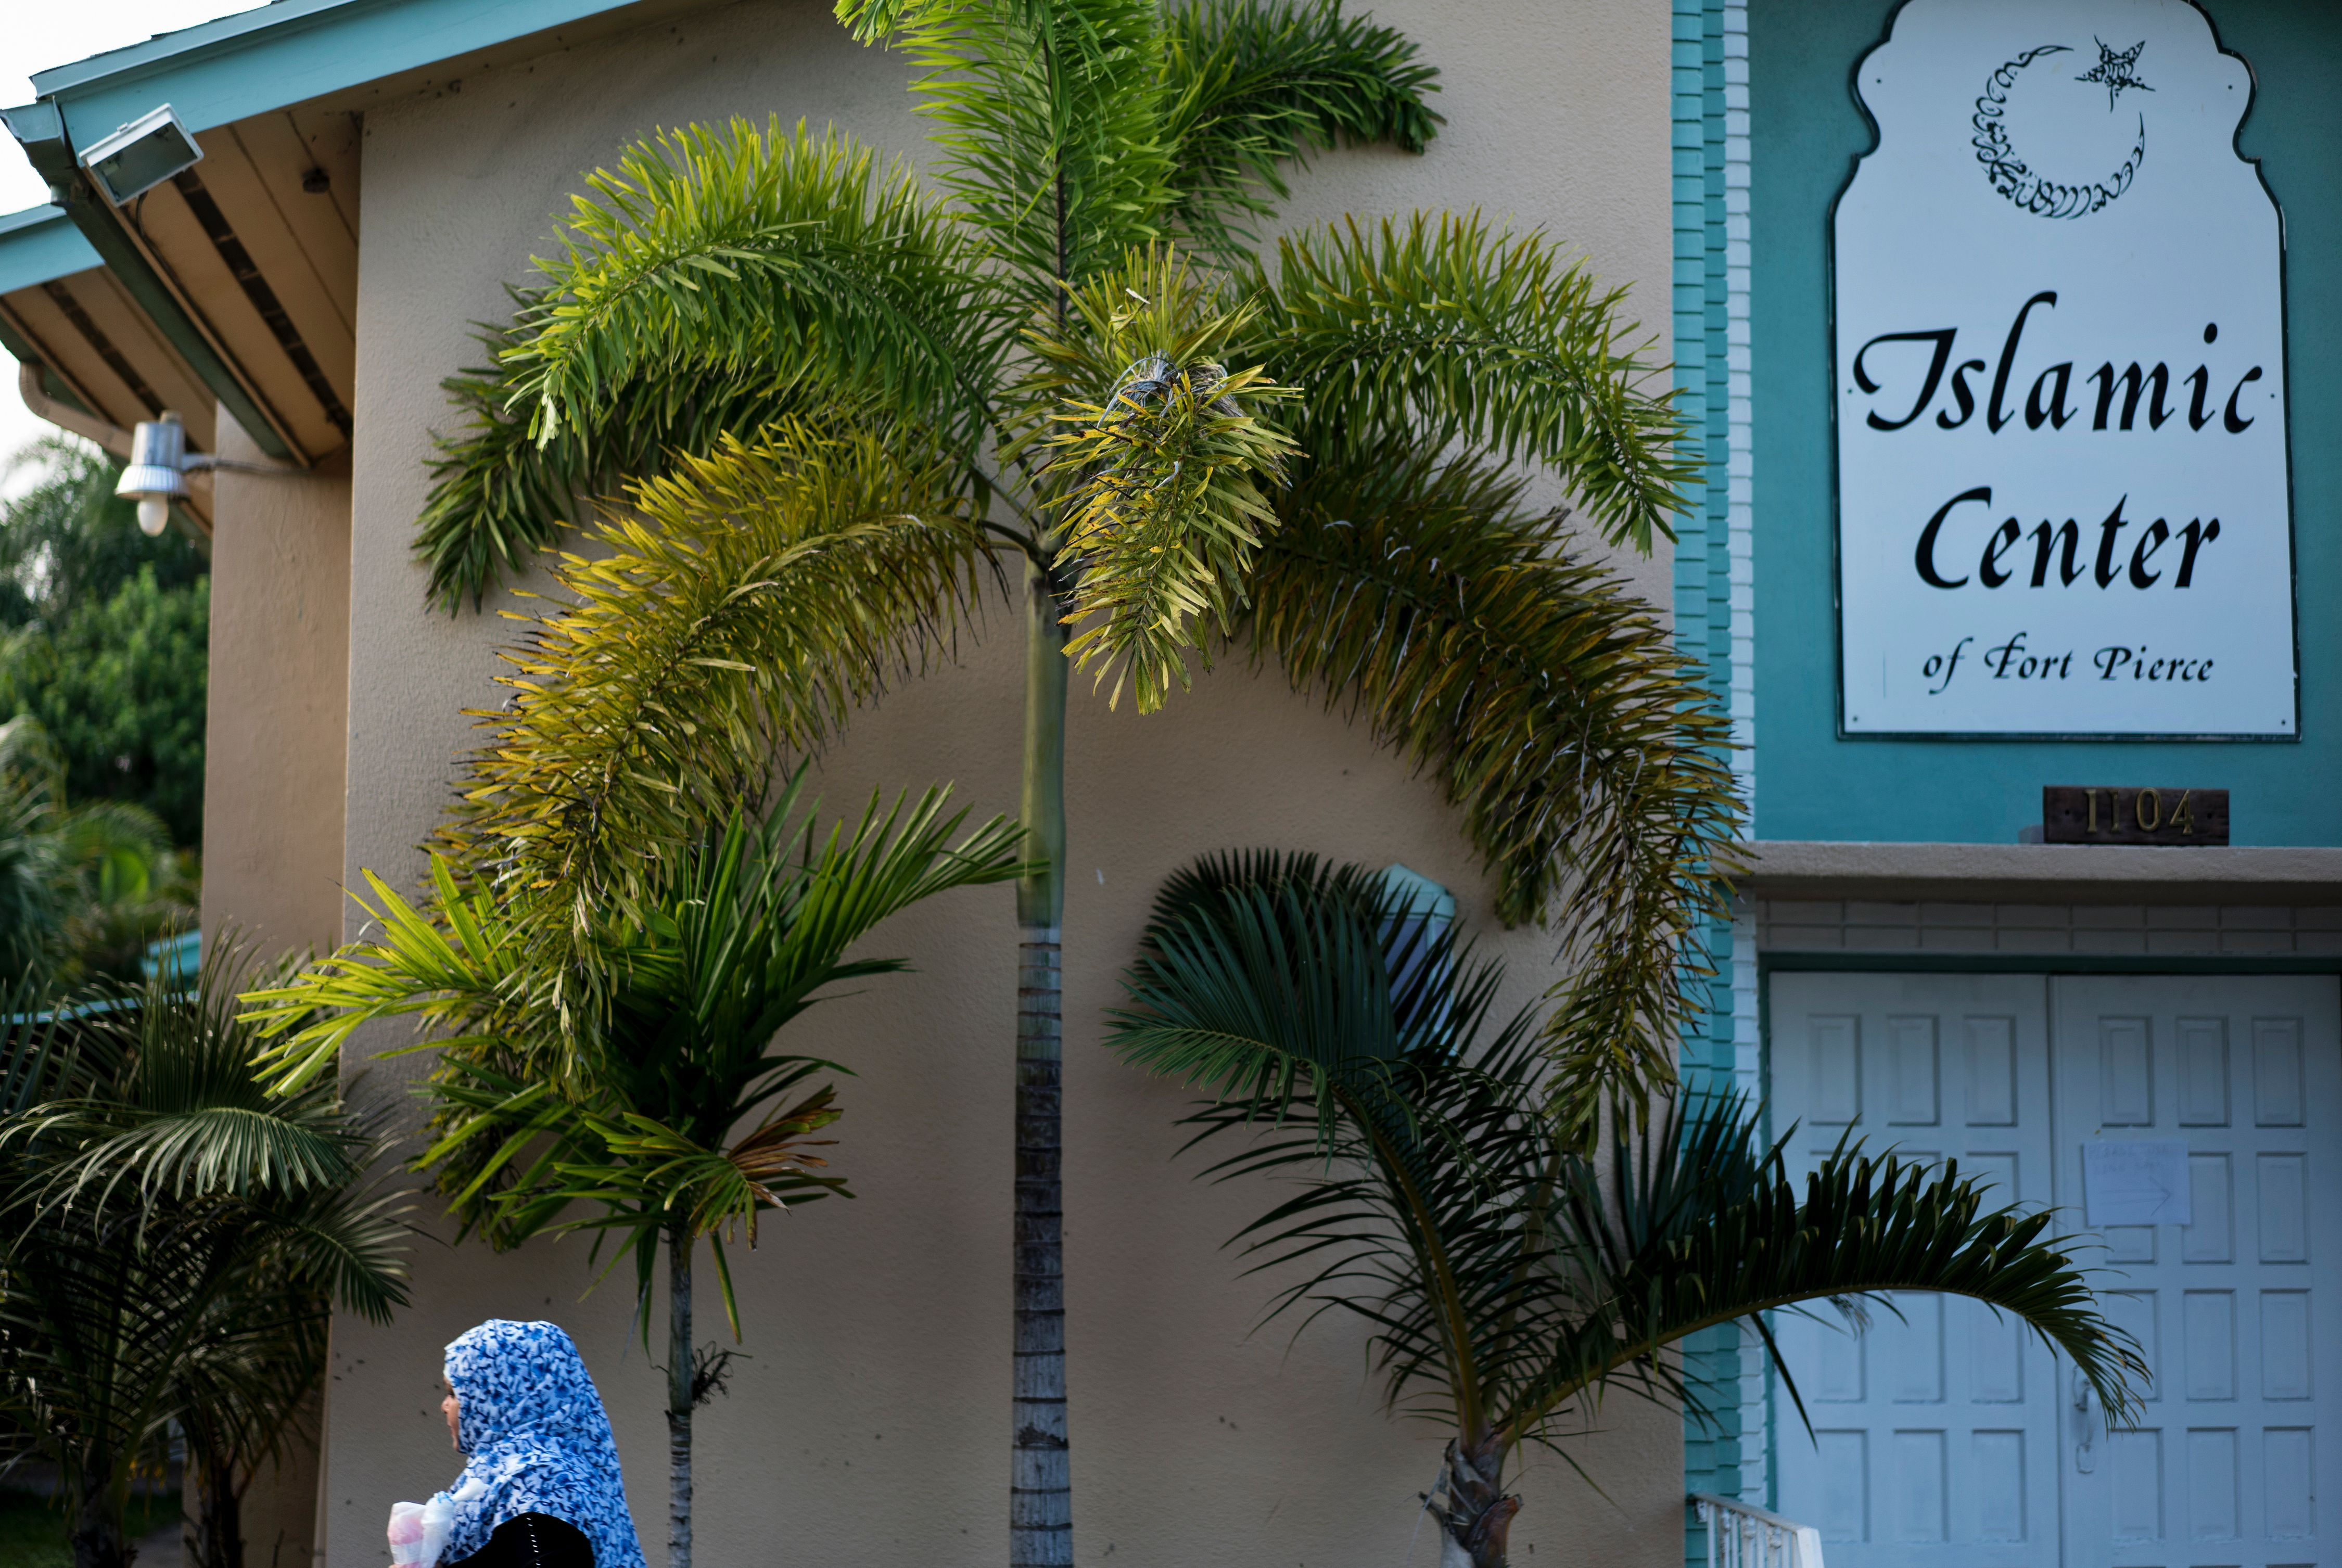 A woman arrives for prayers at the Islamic Center of Fort Pierce where Pulse nightclub shooter Omar Mateen had worshiped on June 14, 2016 in Fort Pierce, Florida.BRENDAN SMIALOWSKI—AFP/Getty Images